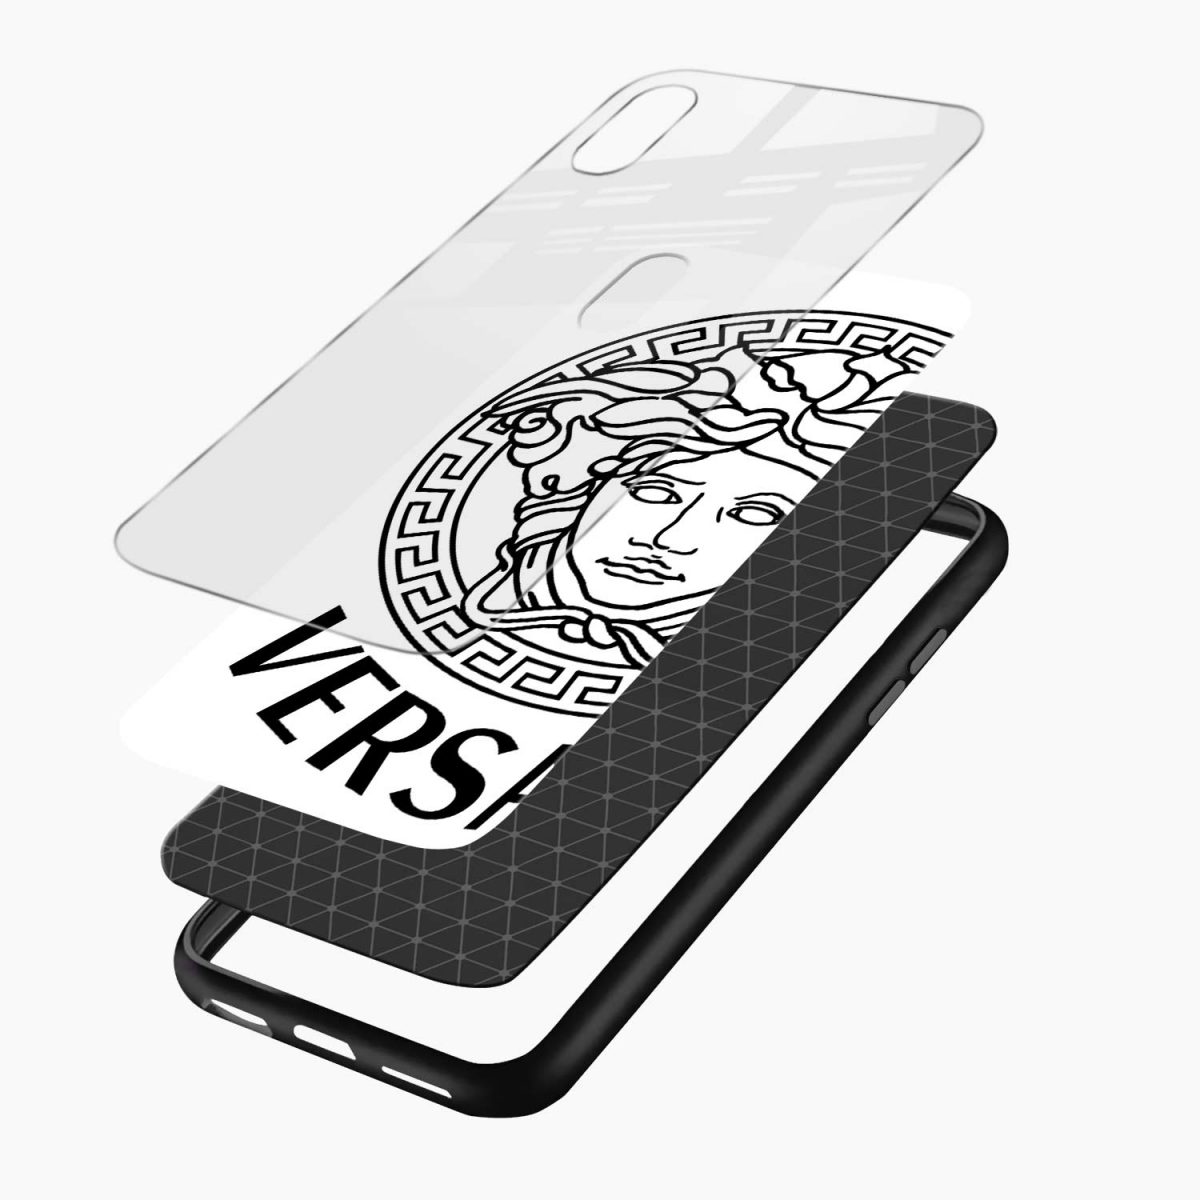 versace black white layers view apple iphone x xs max back cover